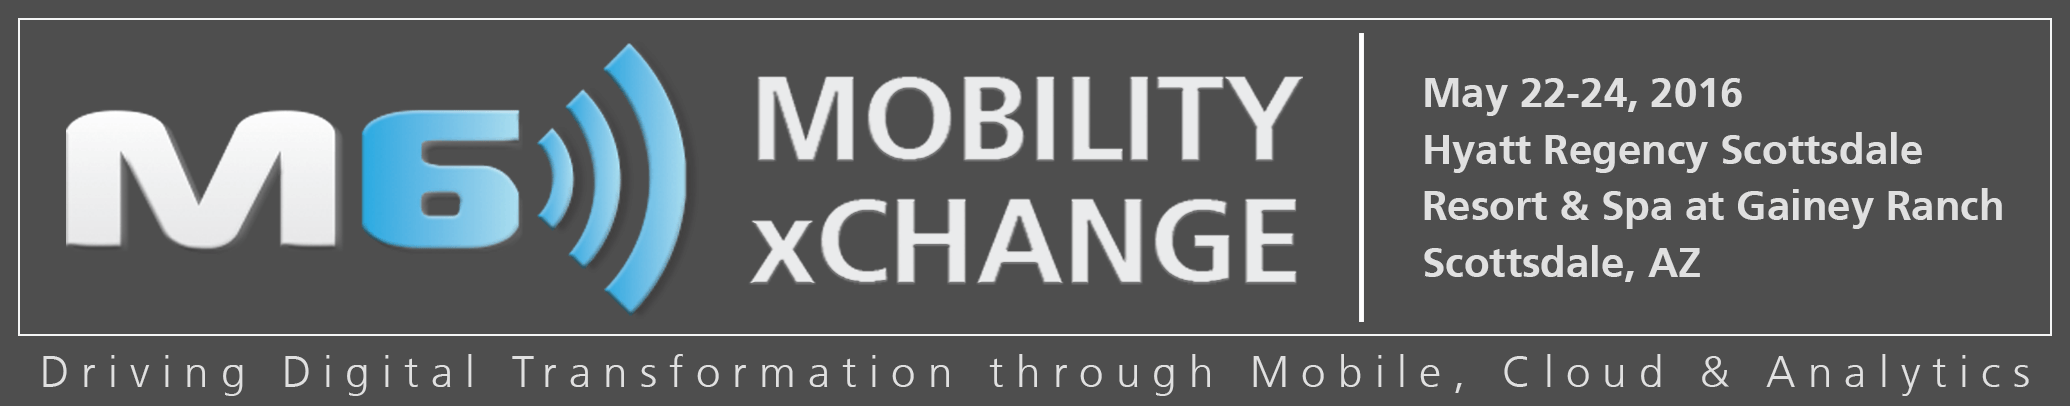 M6 Mobility xChange banner